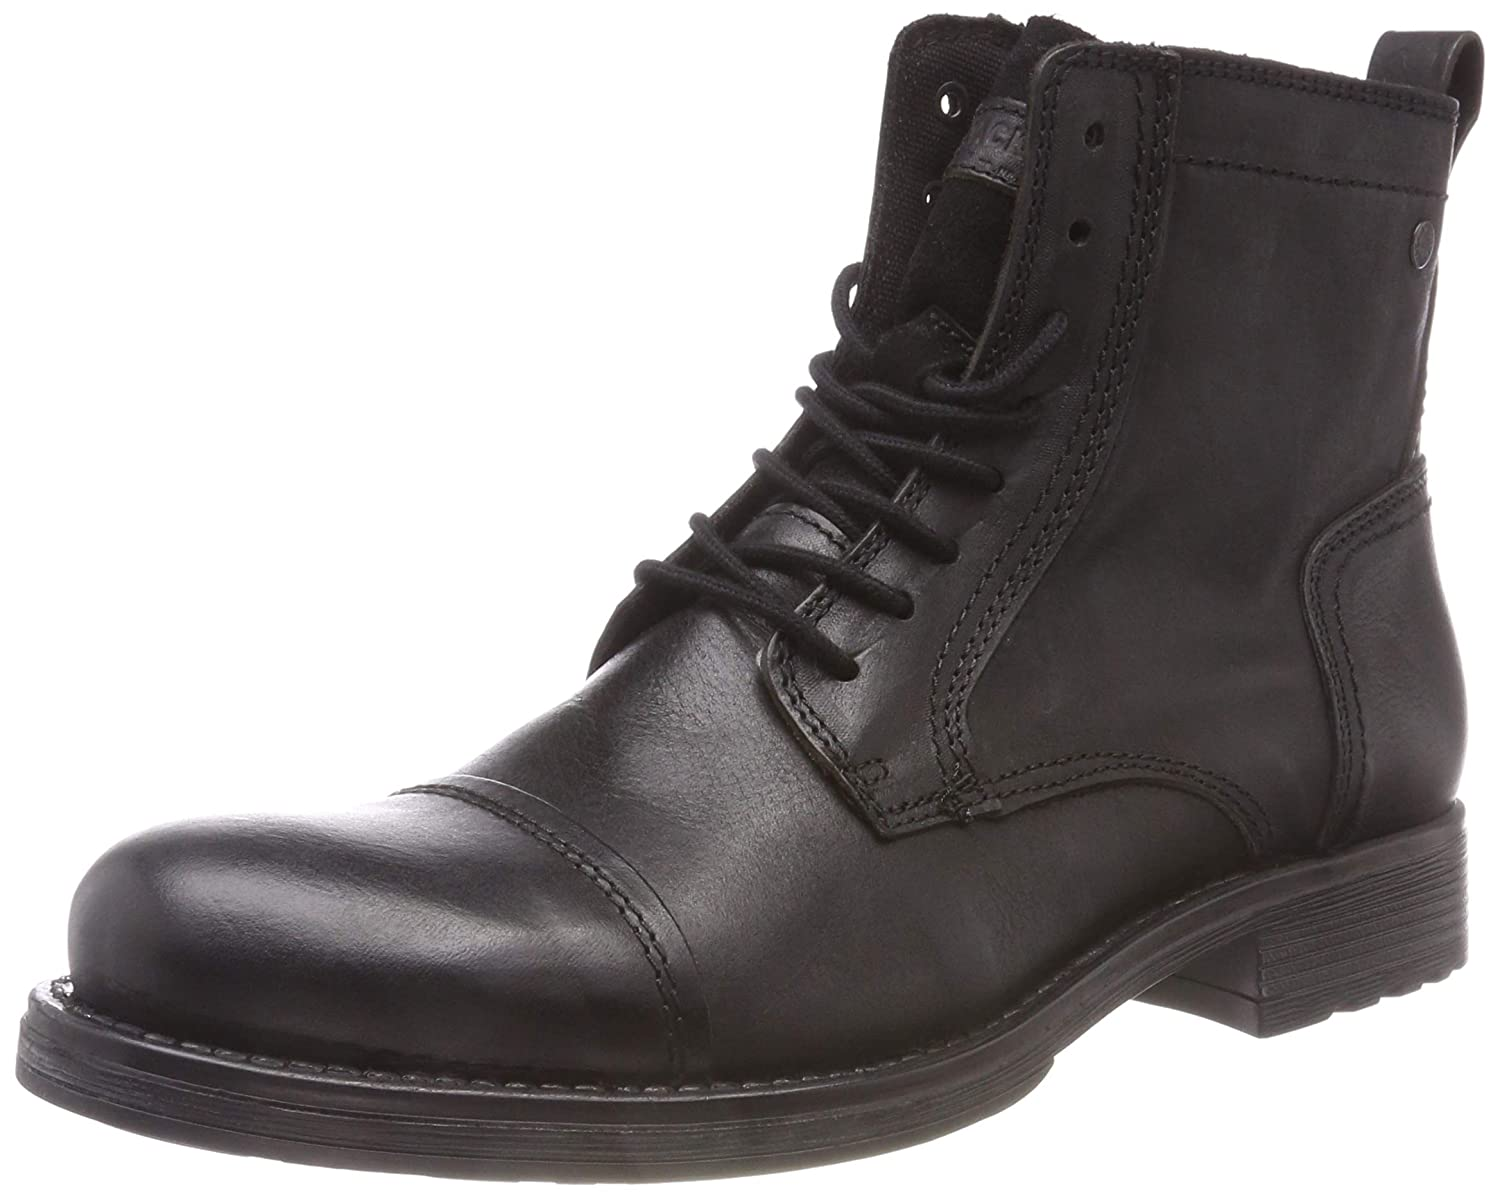 TALLA 44 EU. Jack & Jones Jfwrussel Leather Anthracite Pre, Botas Clasicas para Hombre